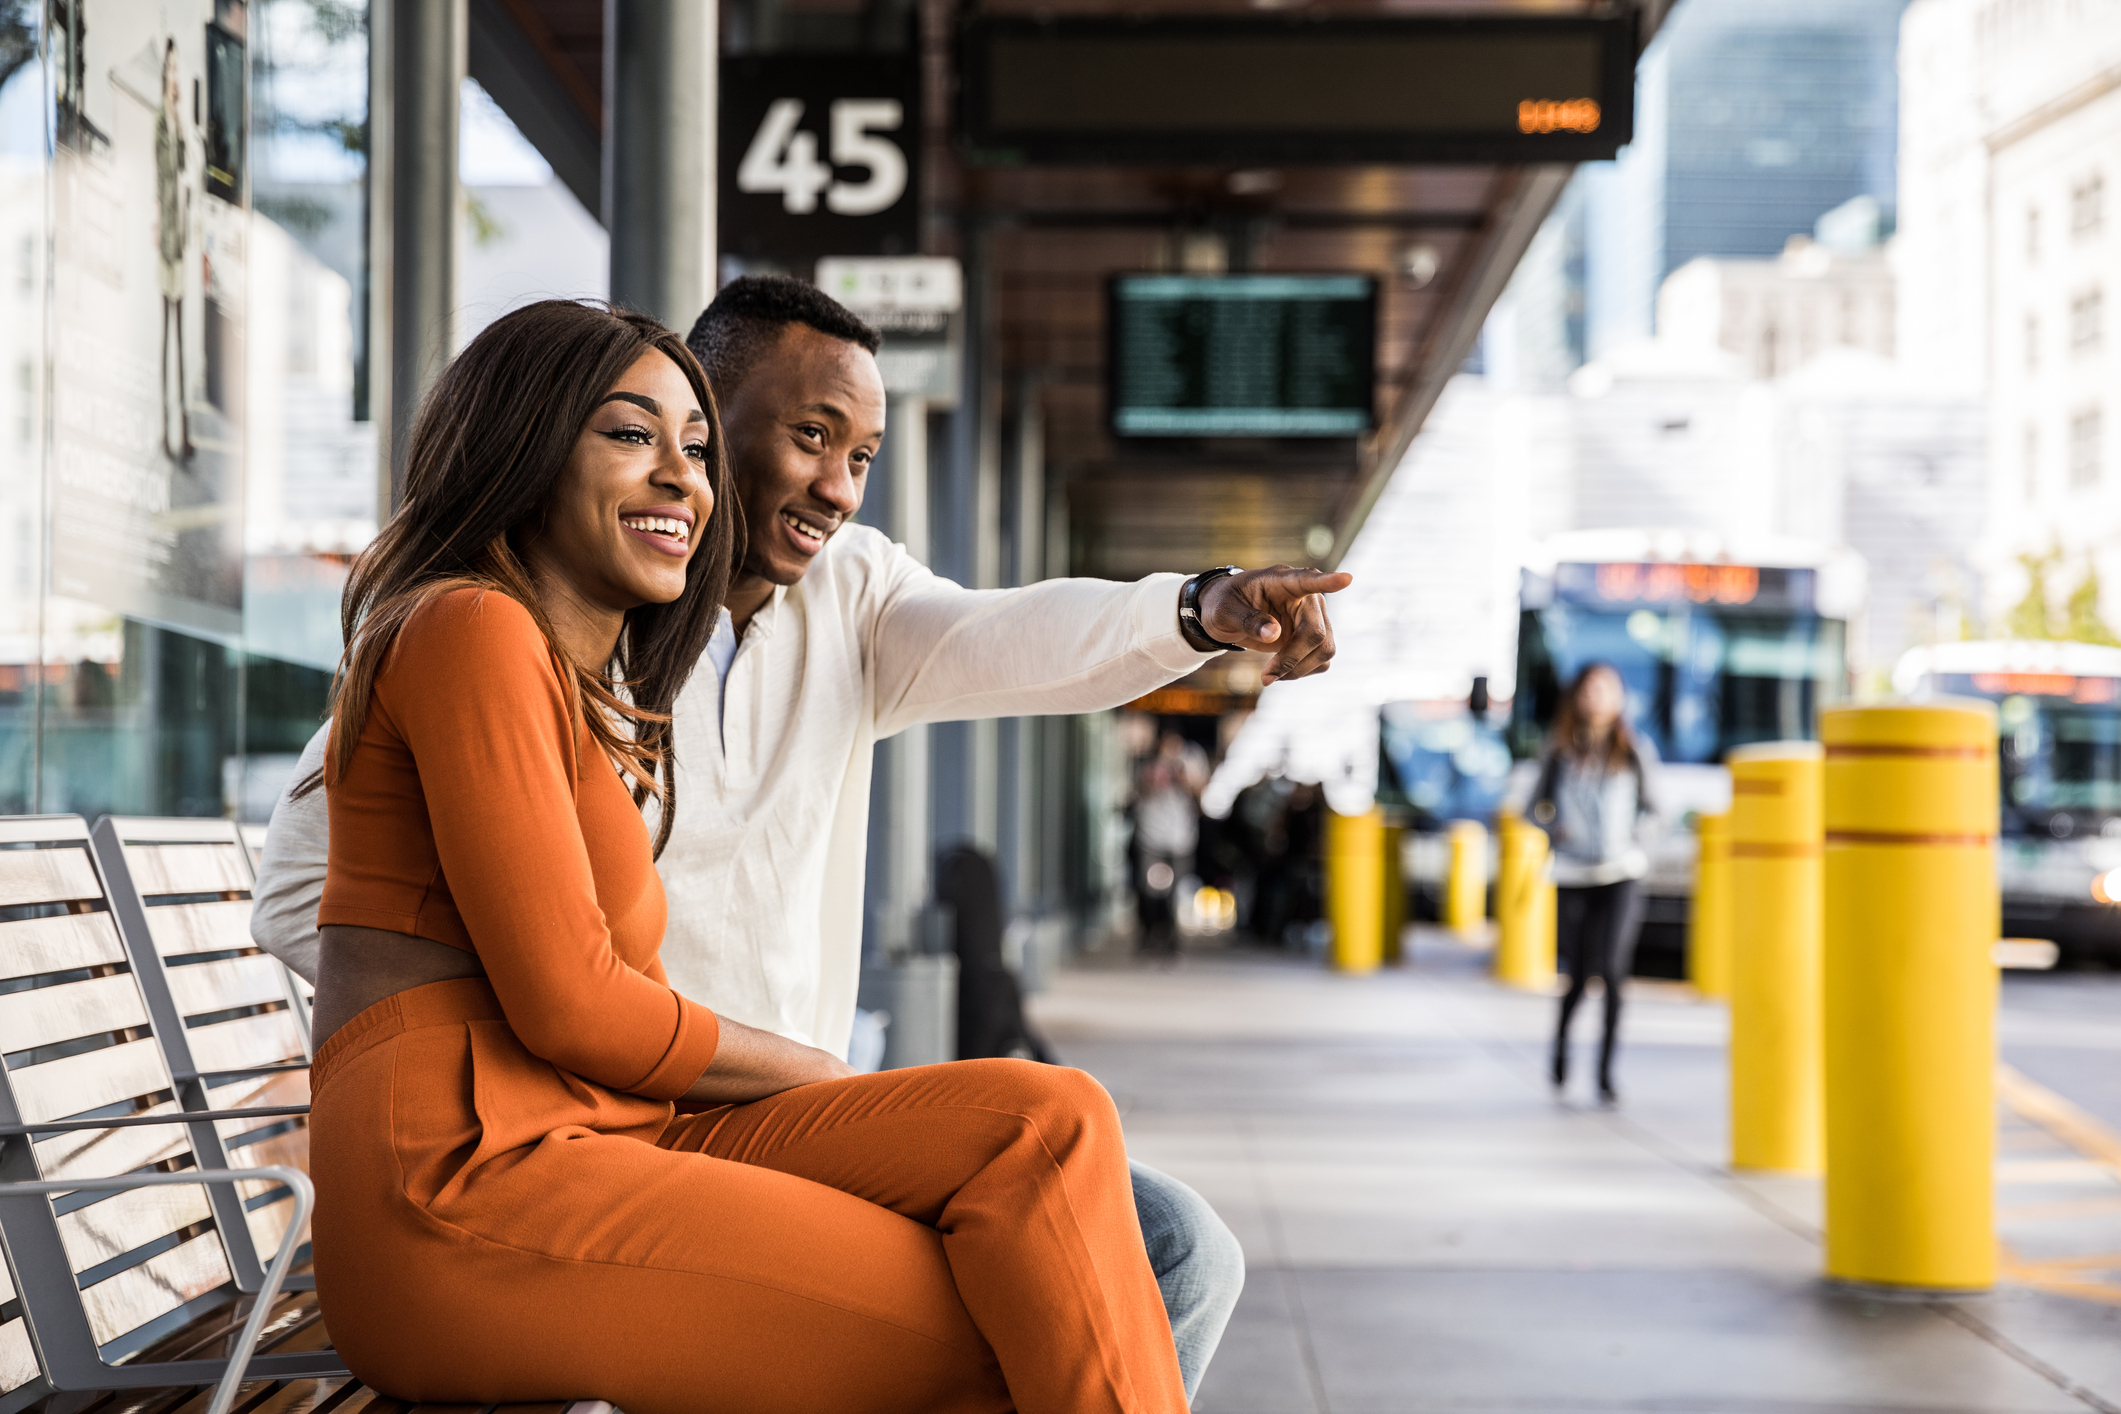 Couple waiting for the bus in Toronto